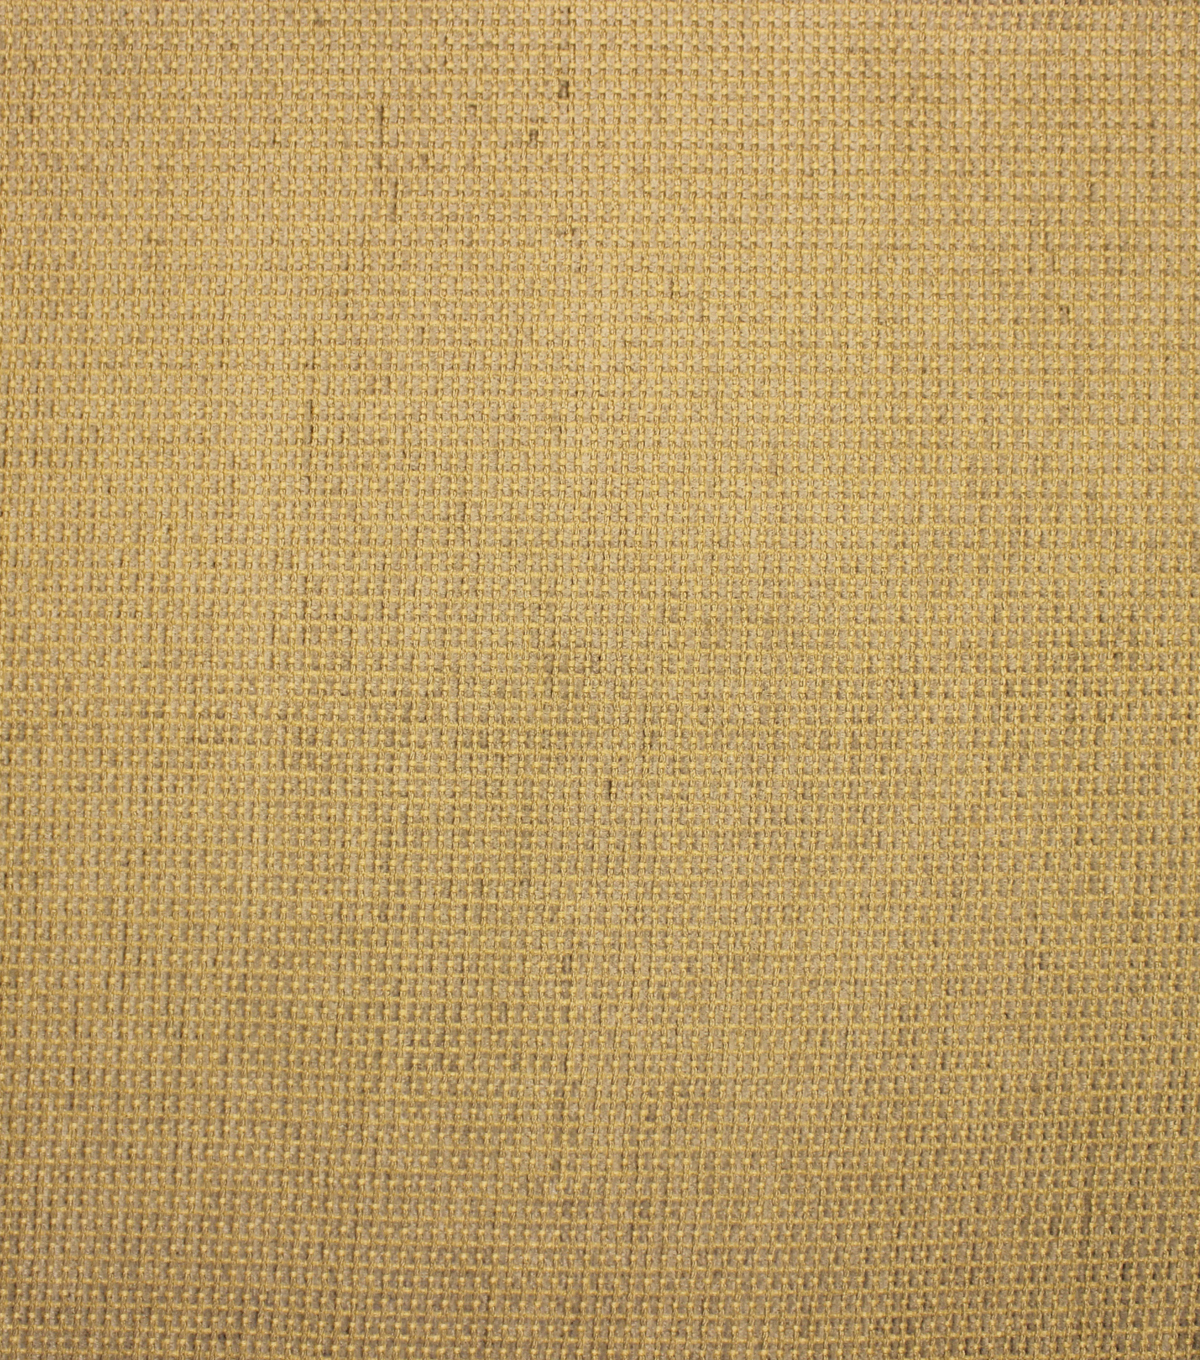 Home Decor 8\u0022x8\u0022 Fabric Swatch-Upholstery Fabric Barrow M8143-5816 Linen